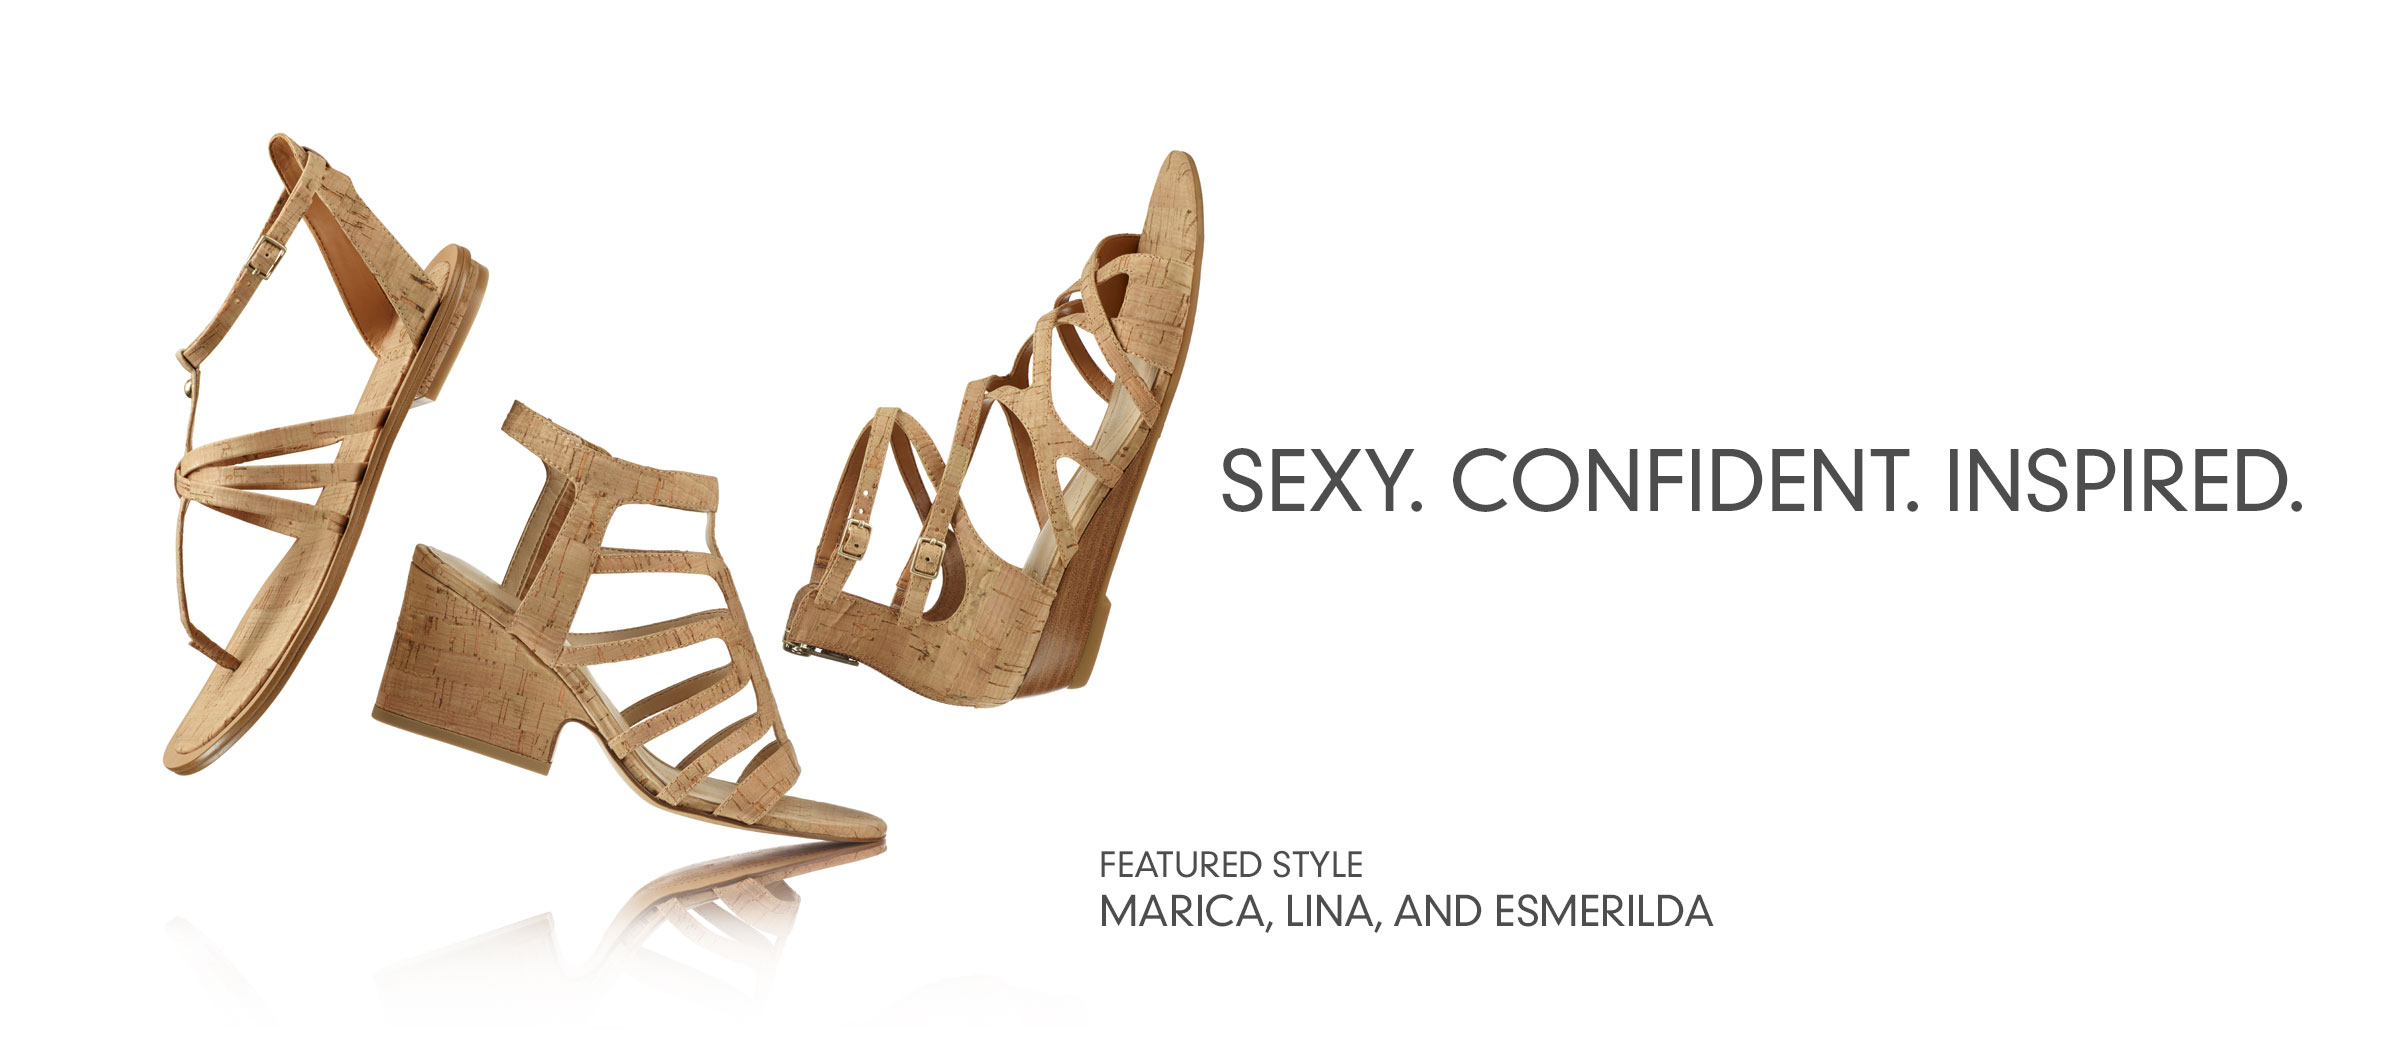 Sexy. Confident. Inspired. Featured styles: Marica, Lina and Esmerilda sandals.  Shop Sandals.